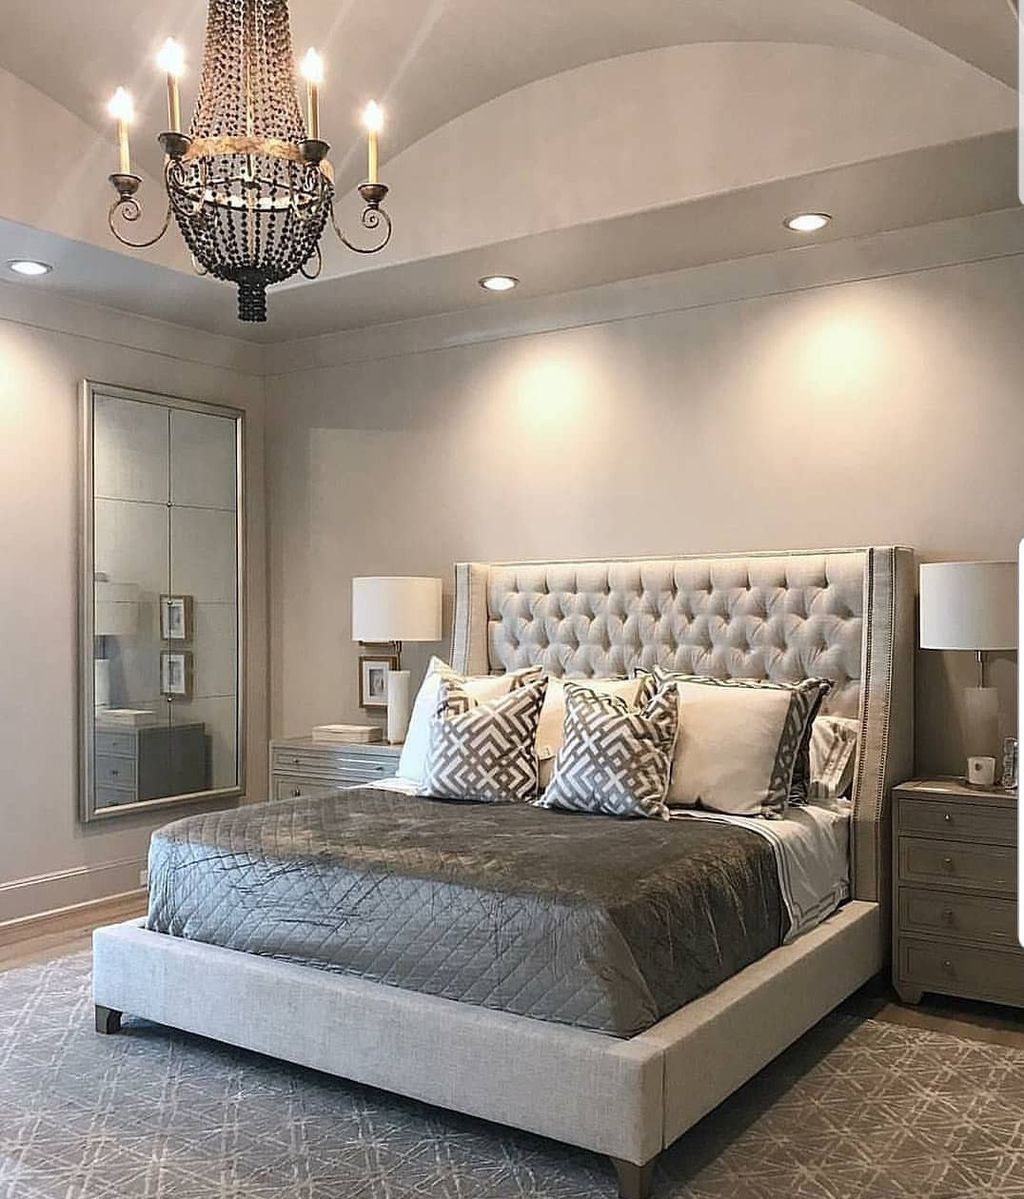 30 Gorgeous Master Bedroom Remodel Ideas Grey Bedroom Decor Simple Bedroom Design Master Bedrooms Decor